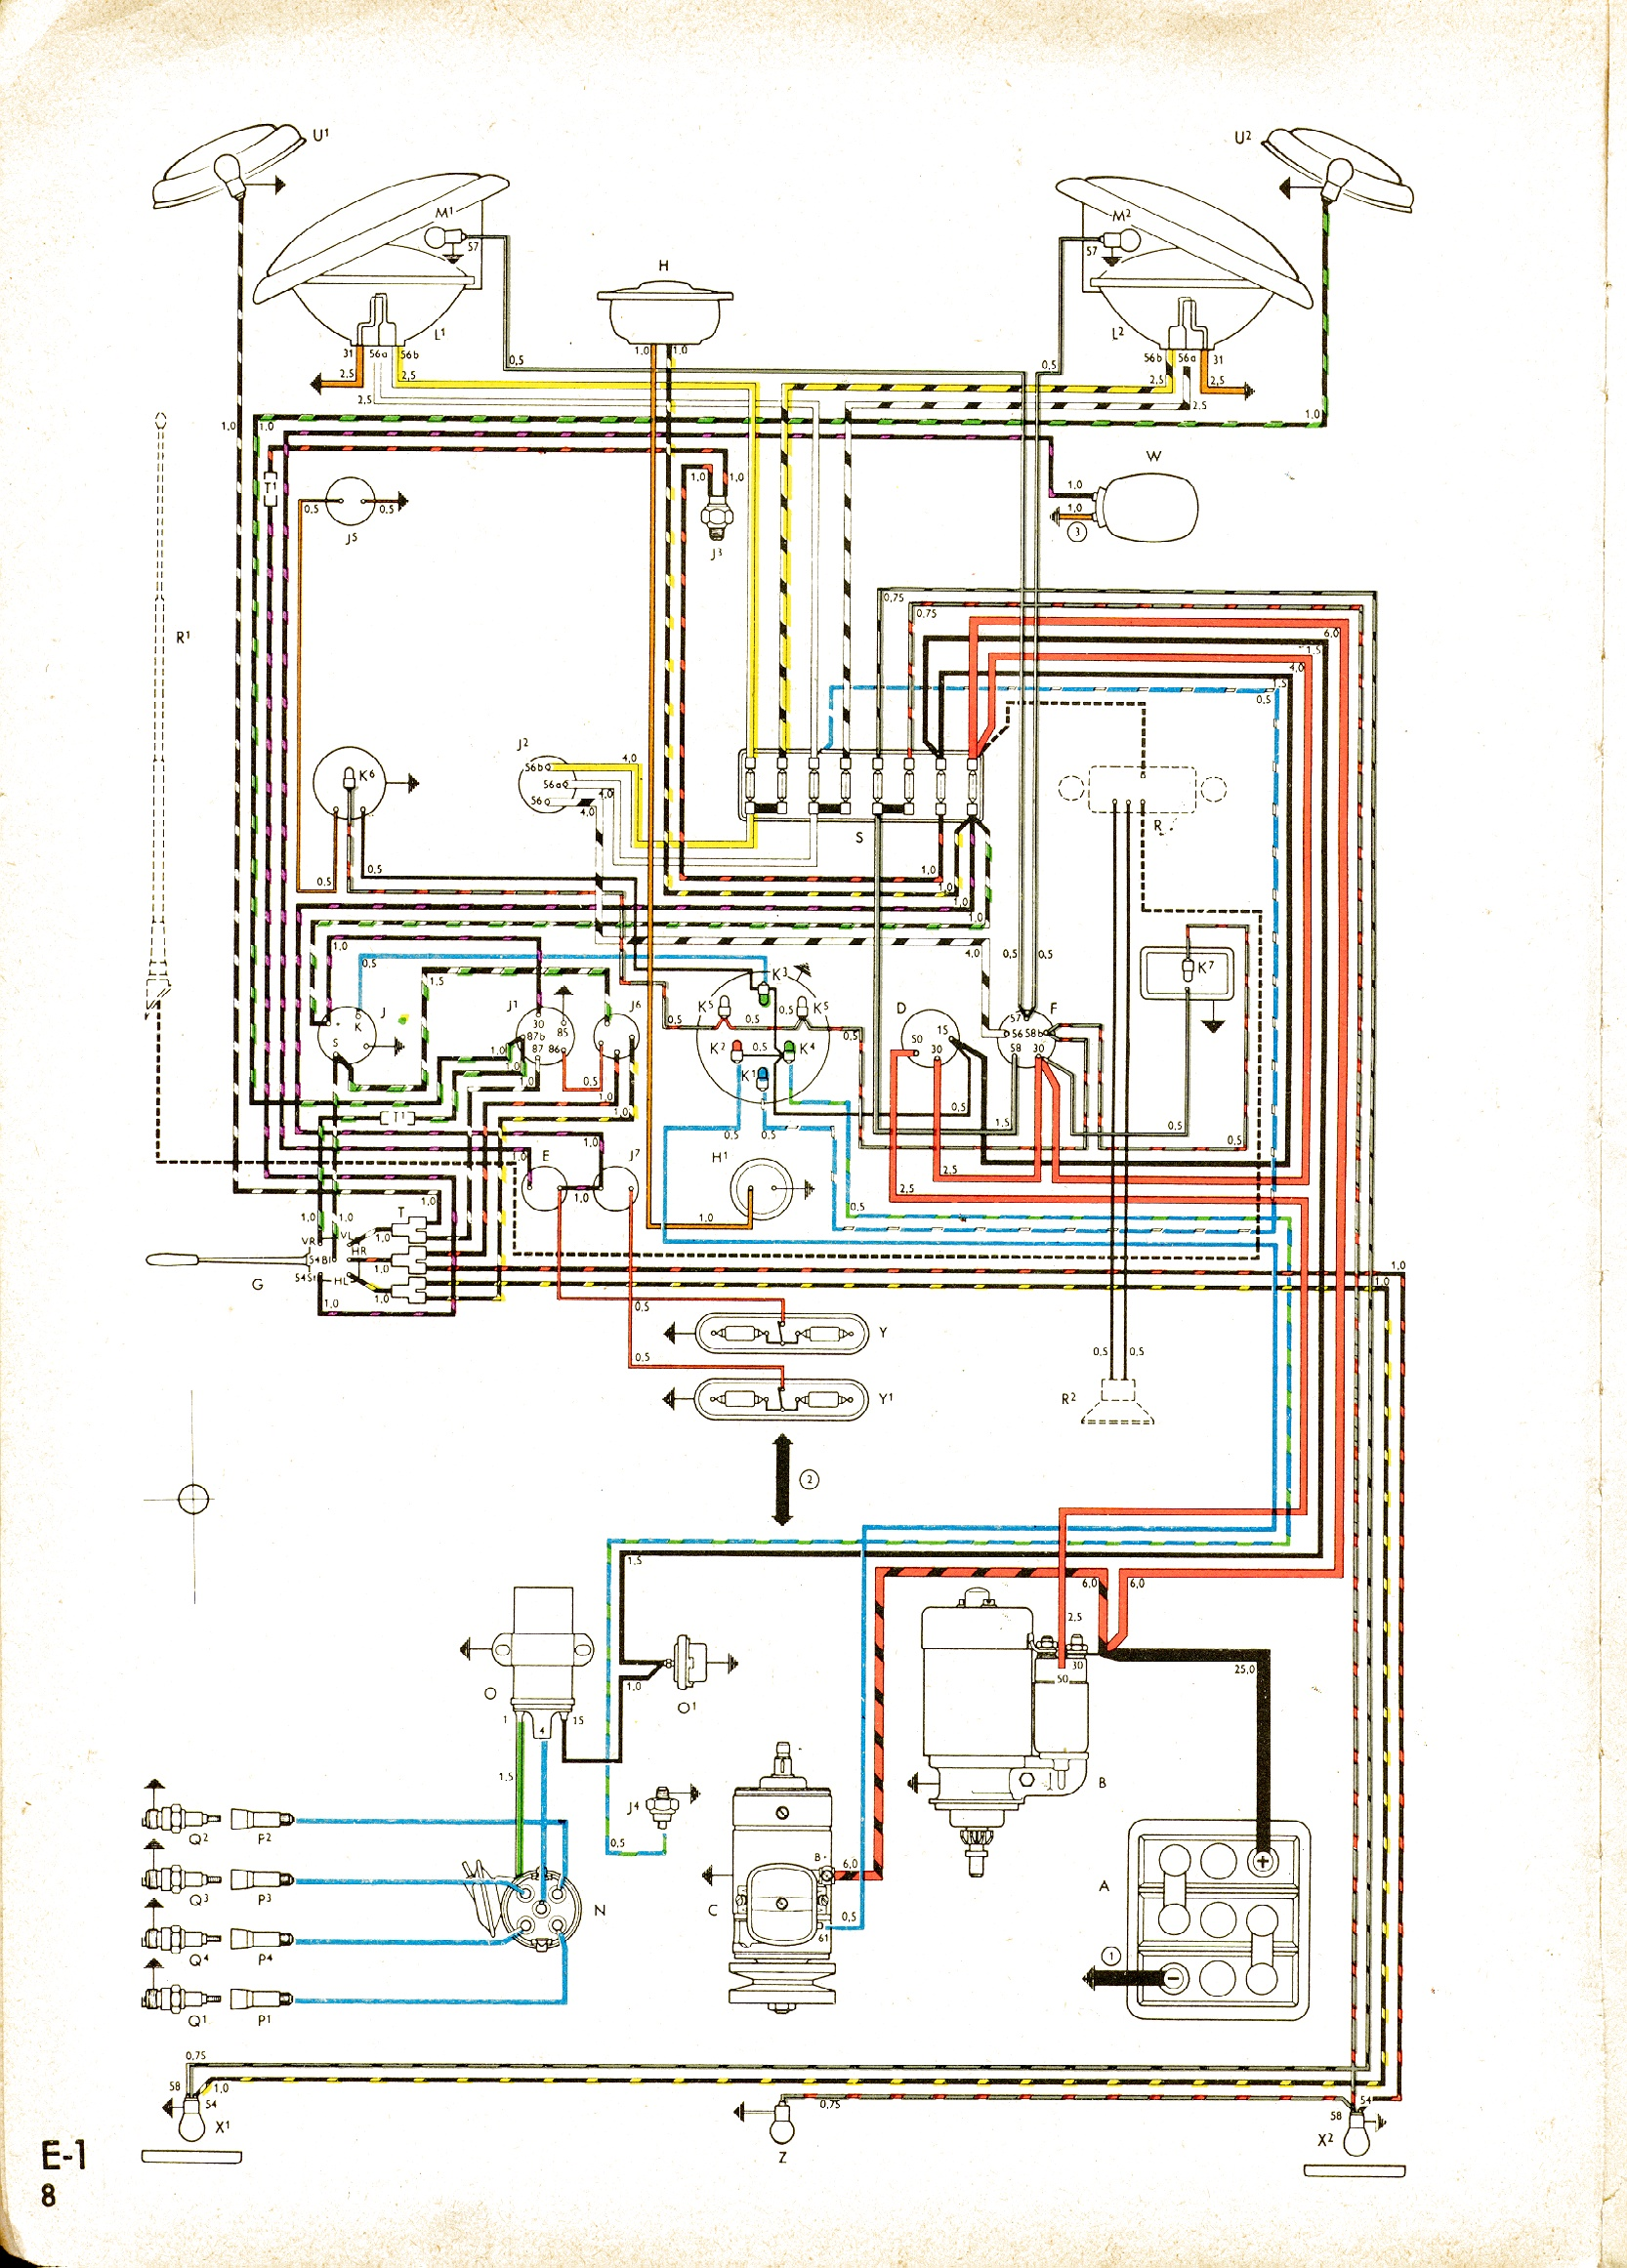 vintagebus com vw bus and other wiring diagrams rh vintagebus com 72 VW Bus  Engine Diagram VW Bus Wiring Harness